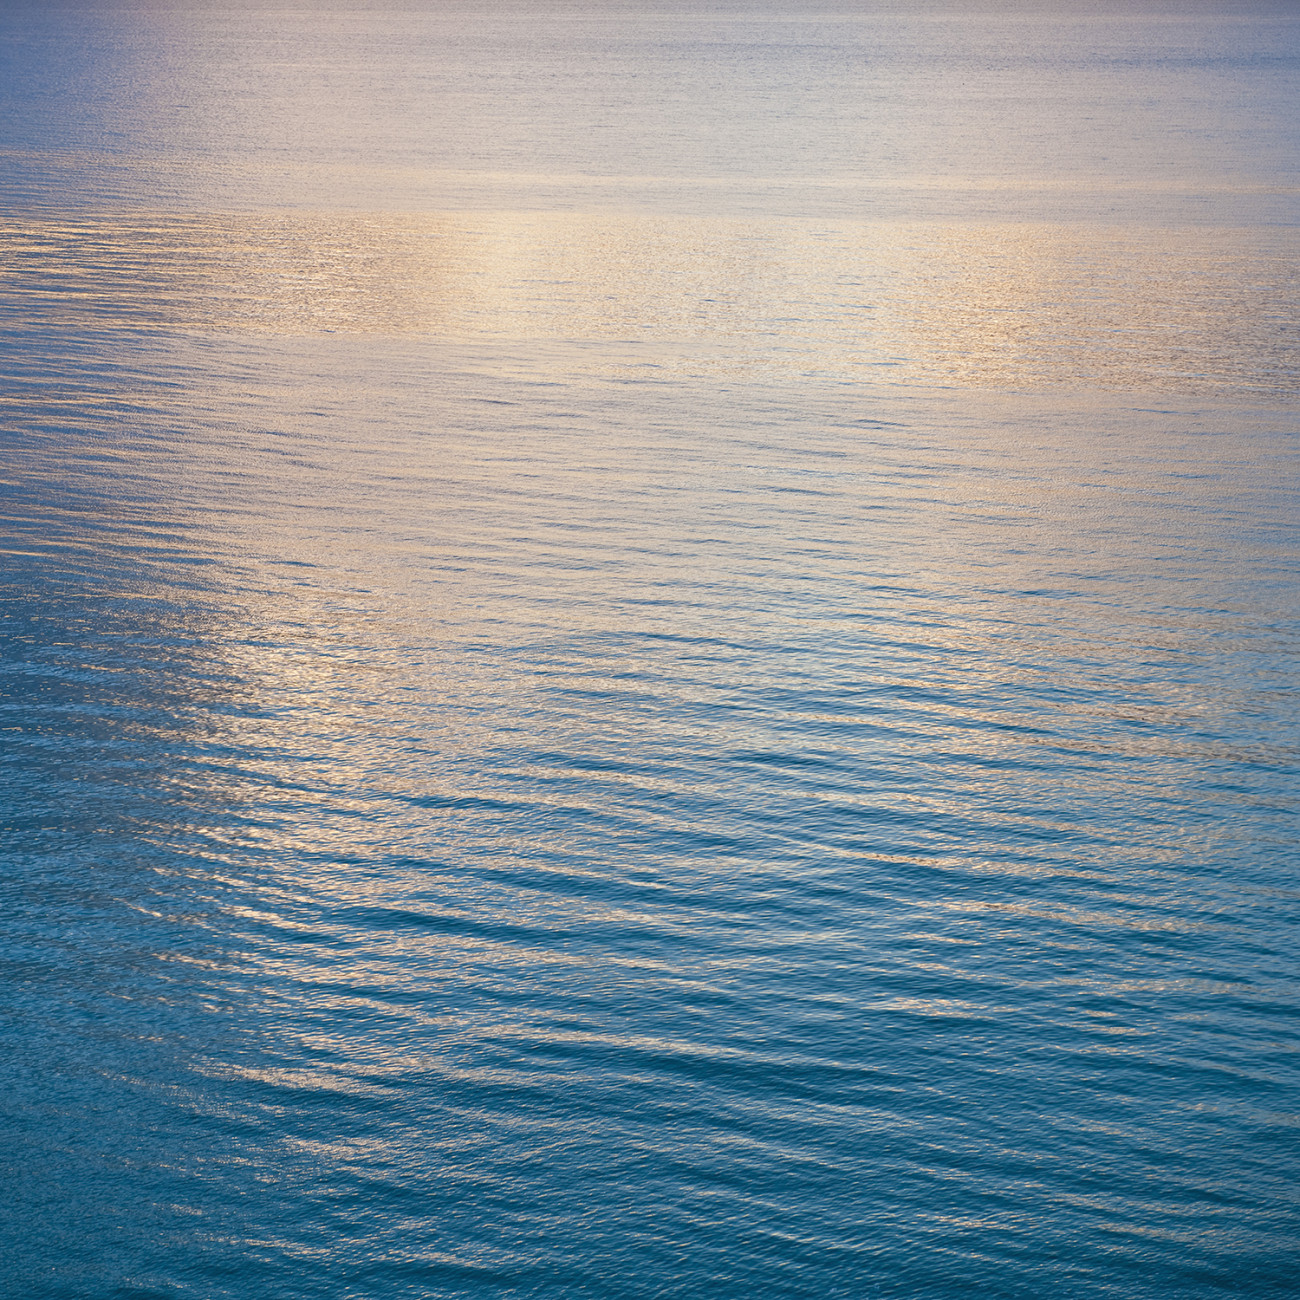 Morning reflection, Atlantic Ocean, Study 2, 2009